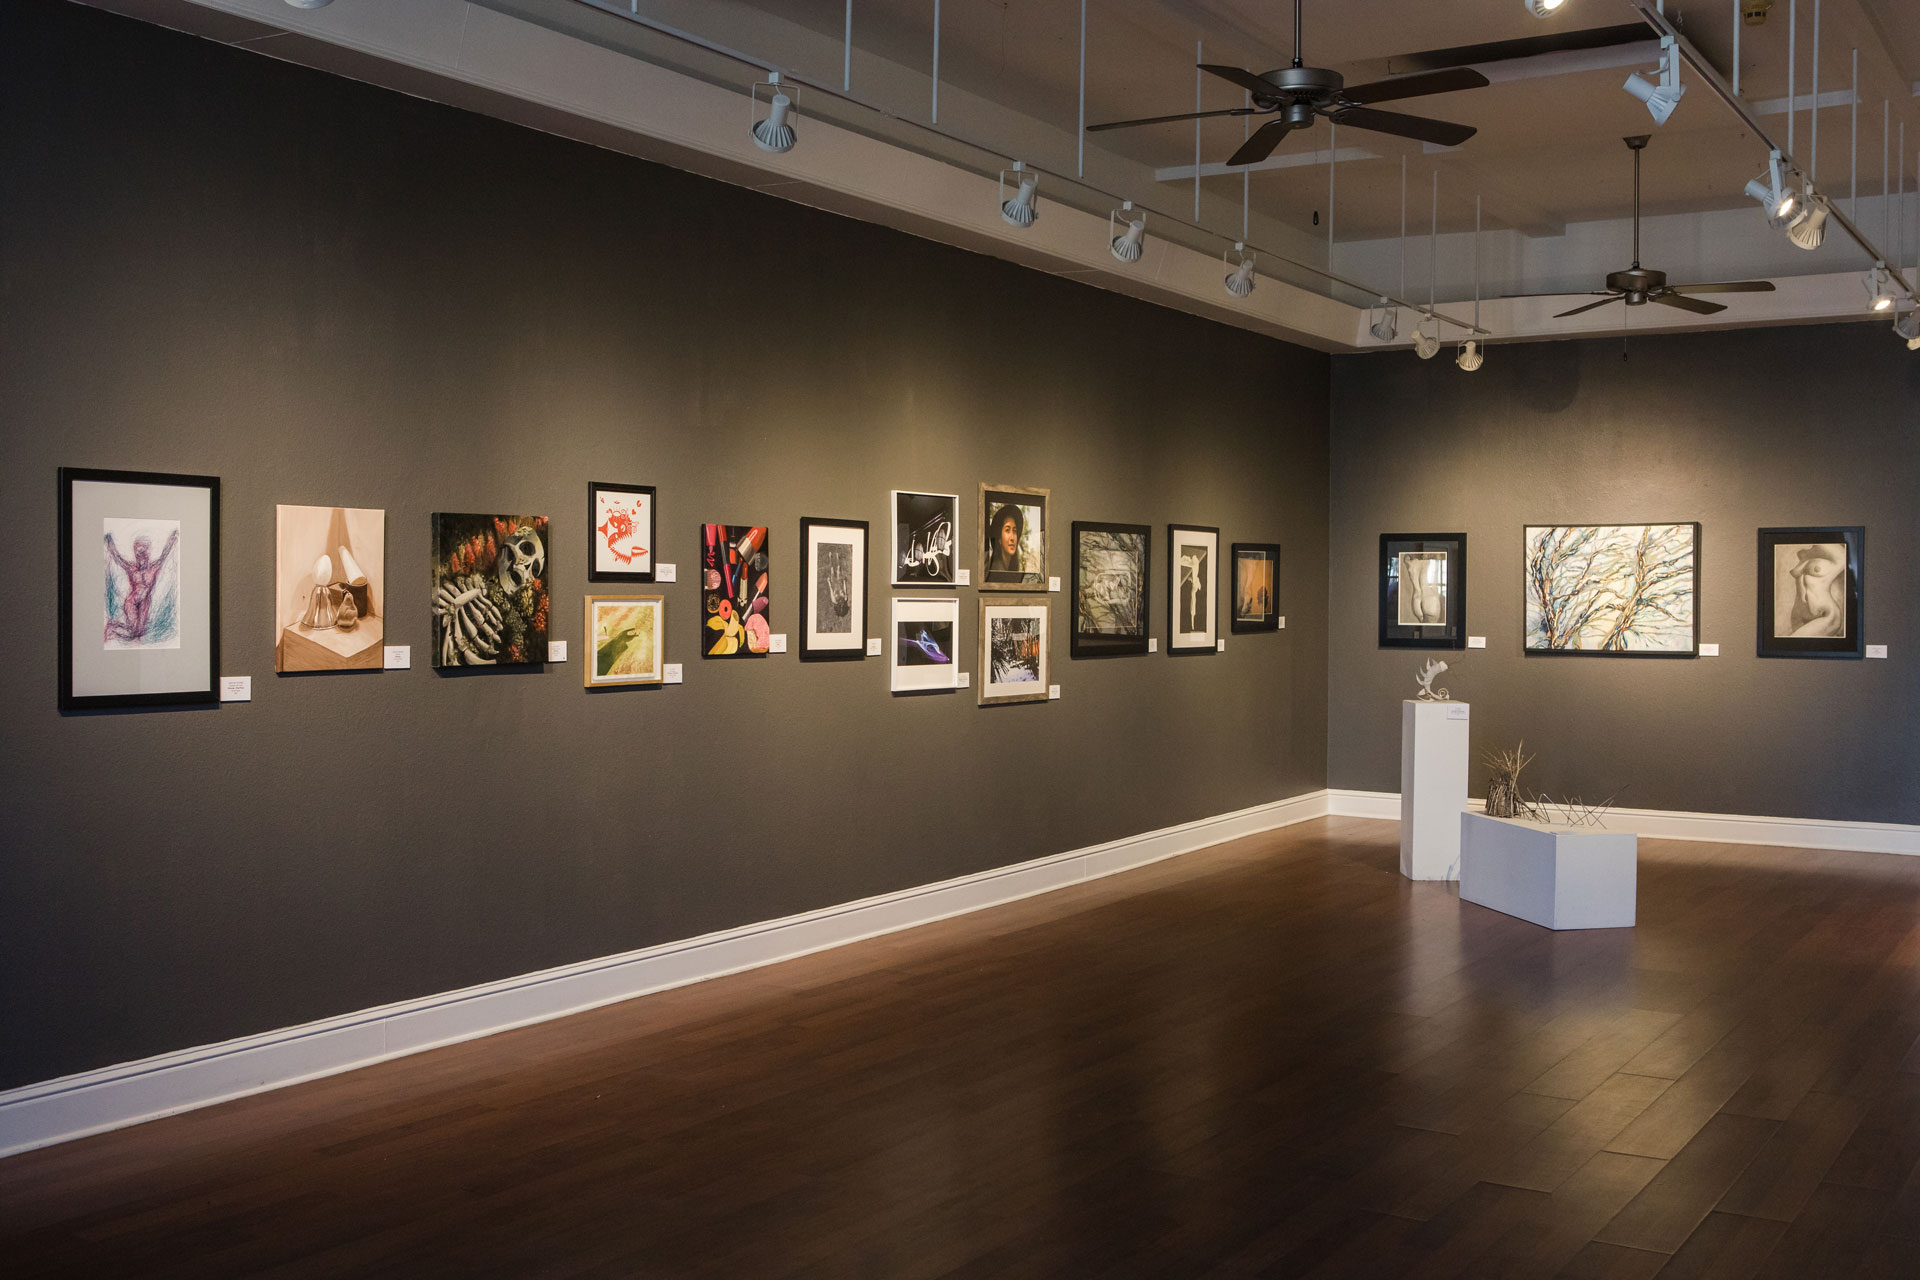 4TH ANNUAL FRCC JURIED STUDENT ART SHOW